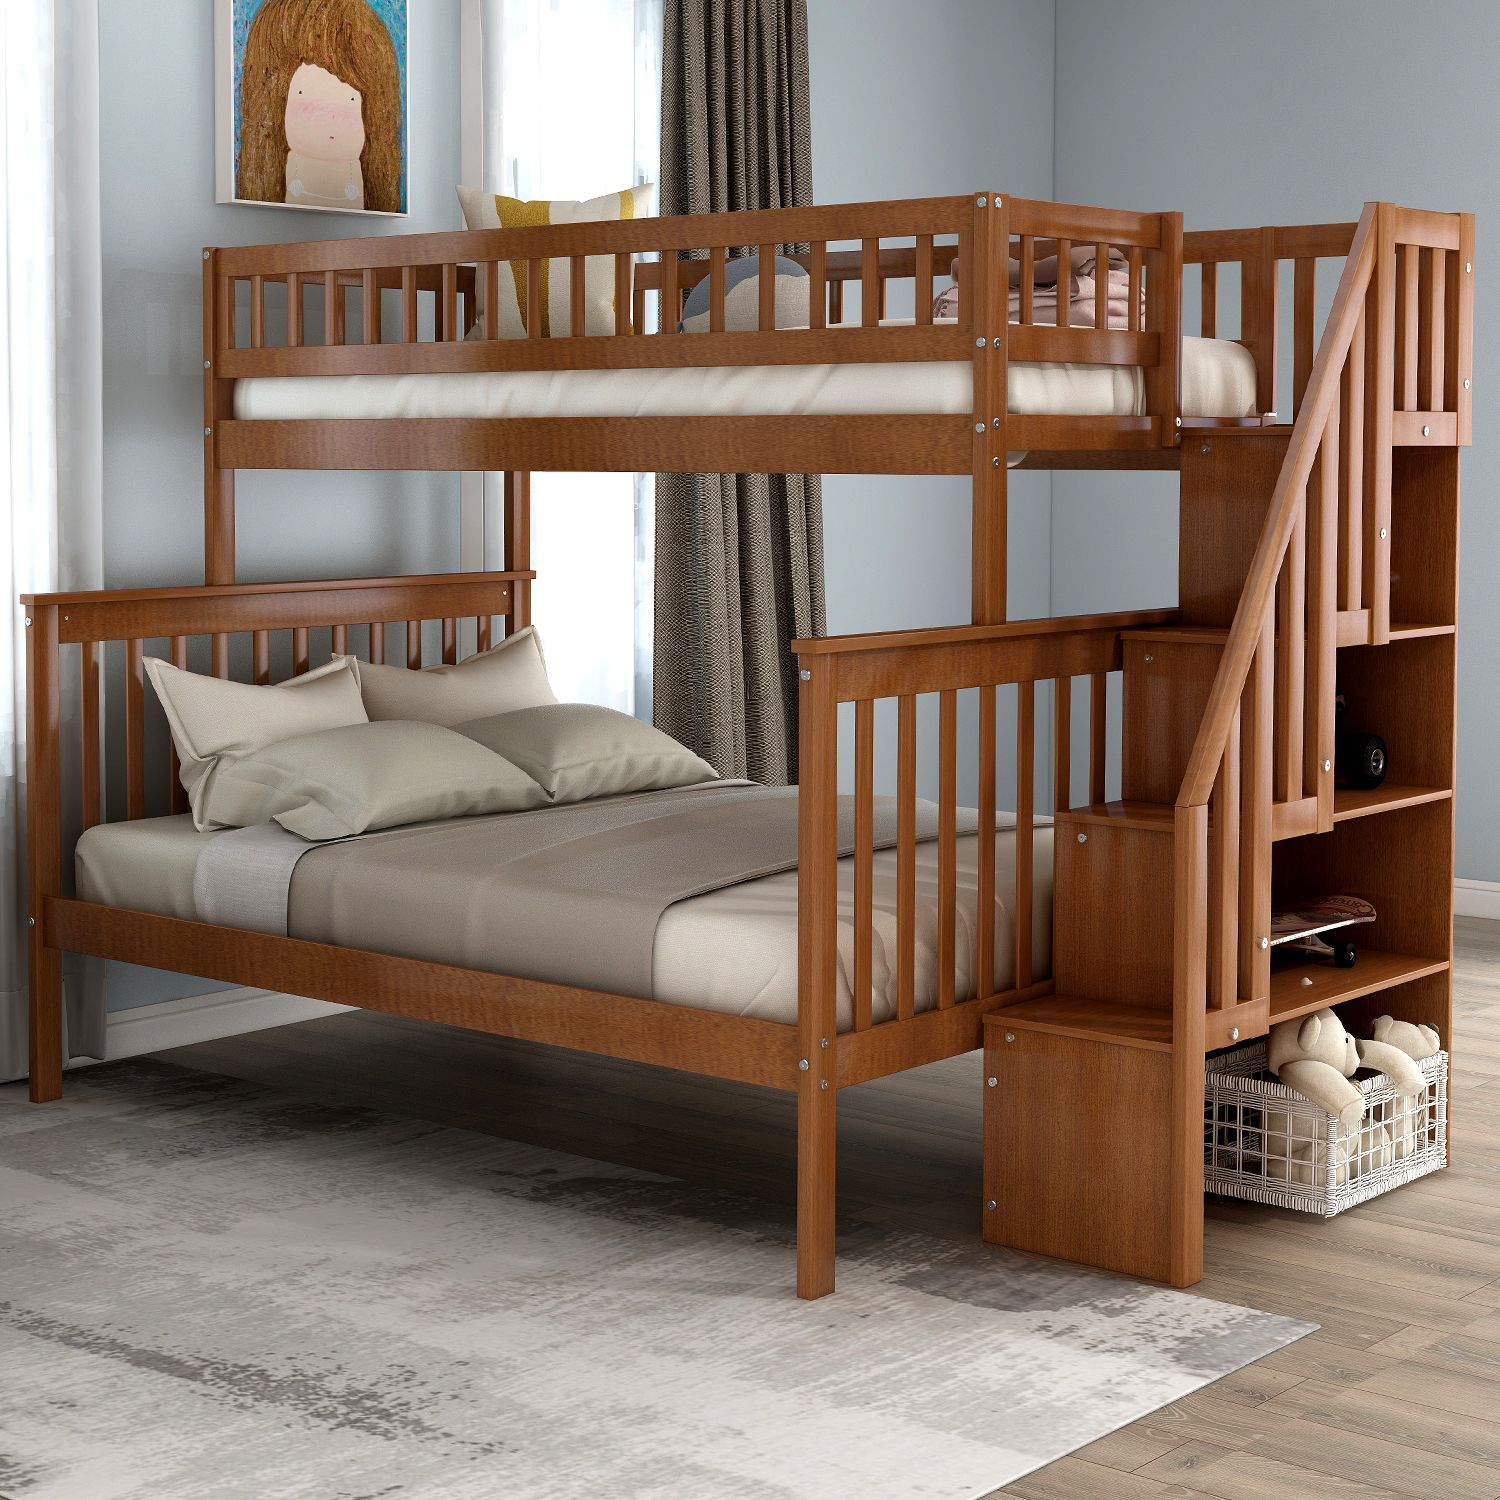 Euroco Twin Over Full Bunk Bed With Stairs And Storage For Kids Multiple Colors Walmart Com Cool Bunk Beds Bunk Bed With Trundle Modern Bunk Beds Twin over full bunk beds for sale